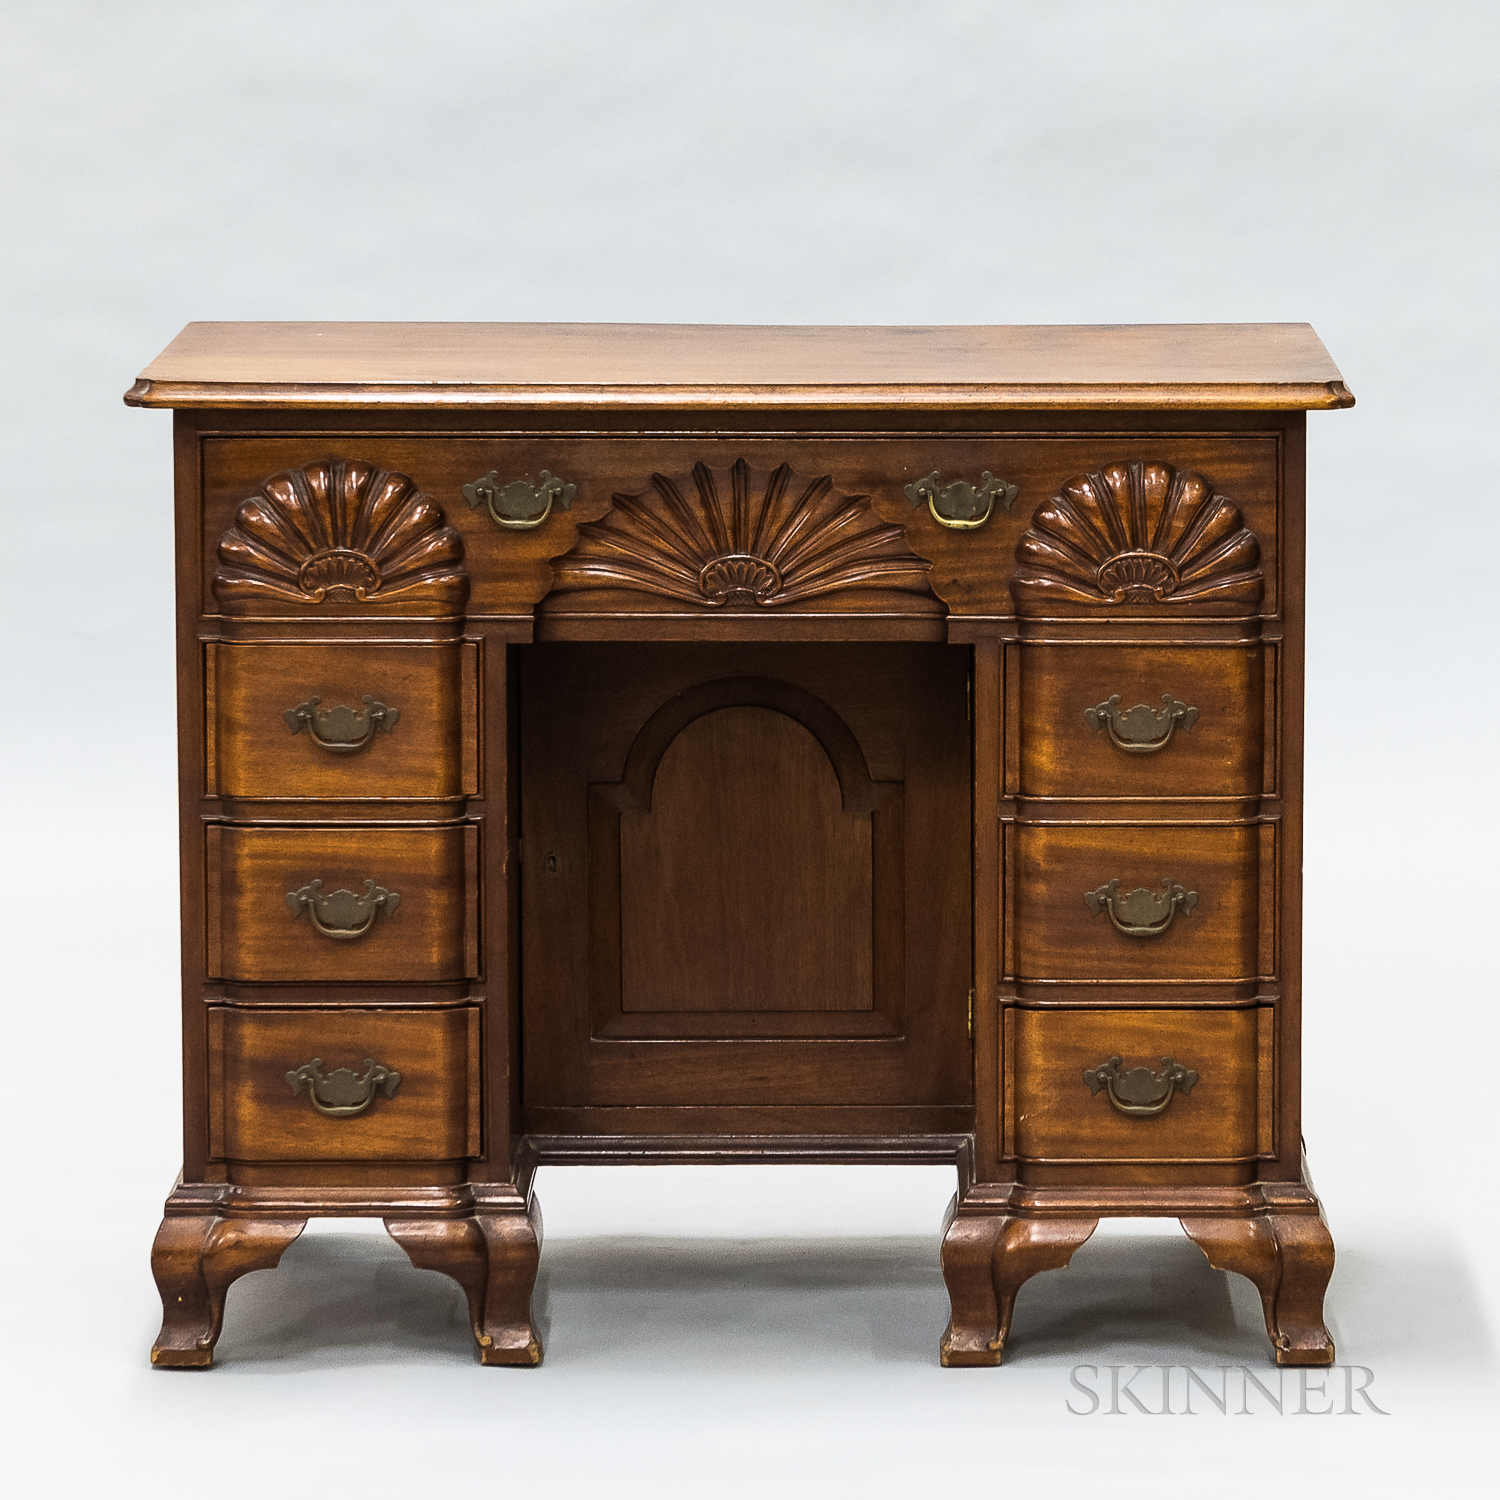 Chippendale-style Shell-carved Mahogany Small Desk